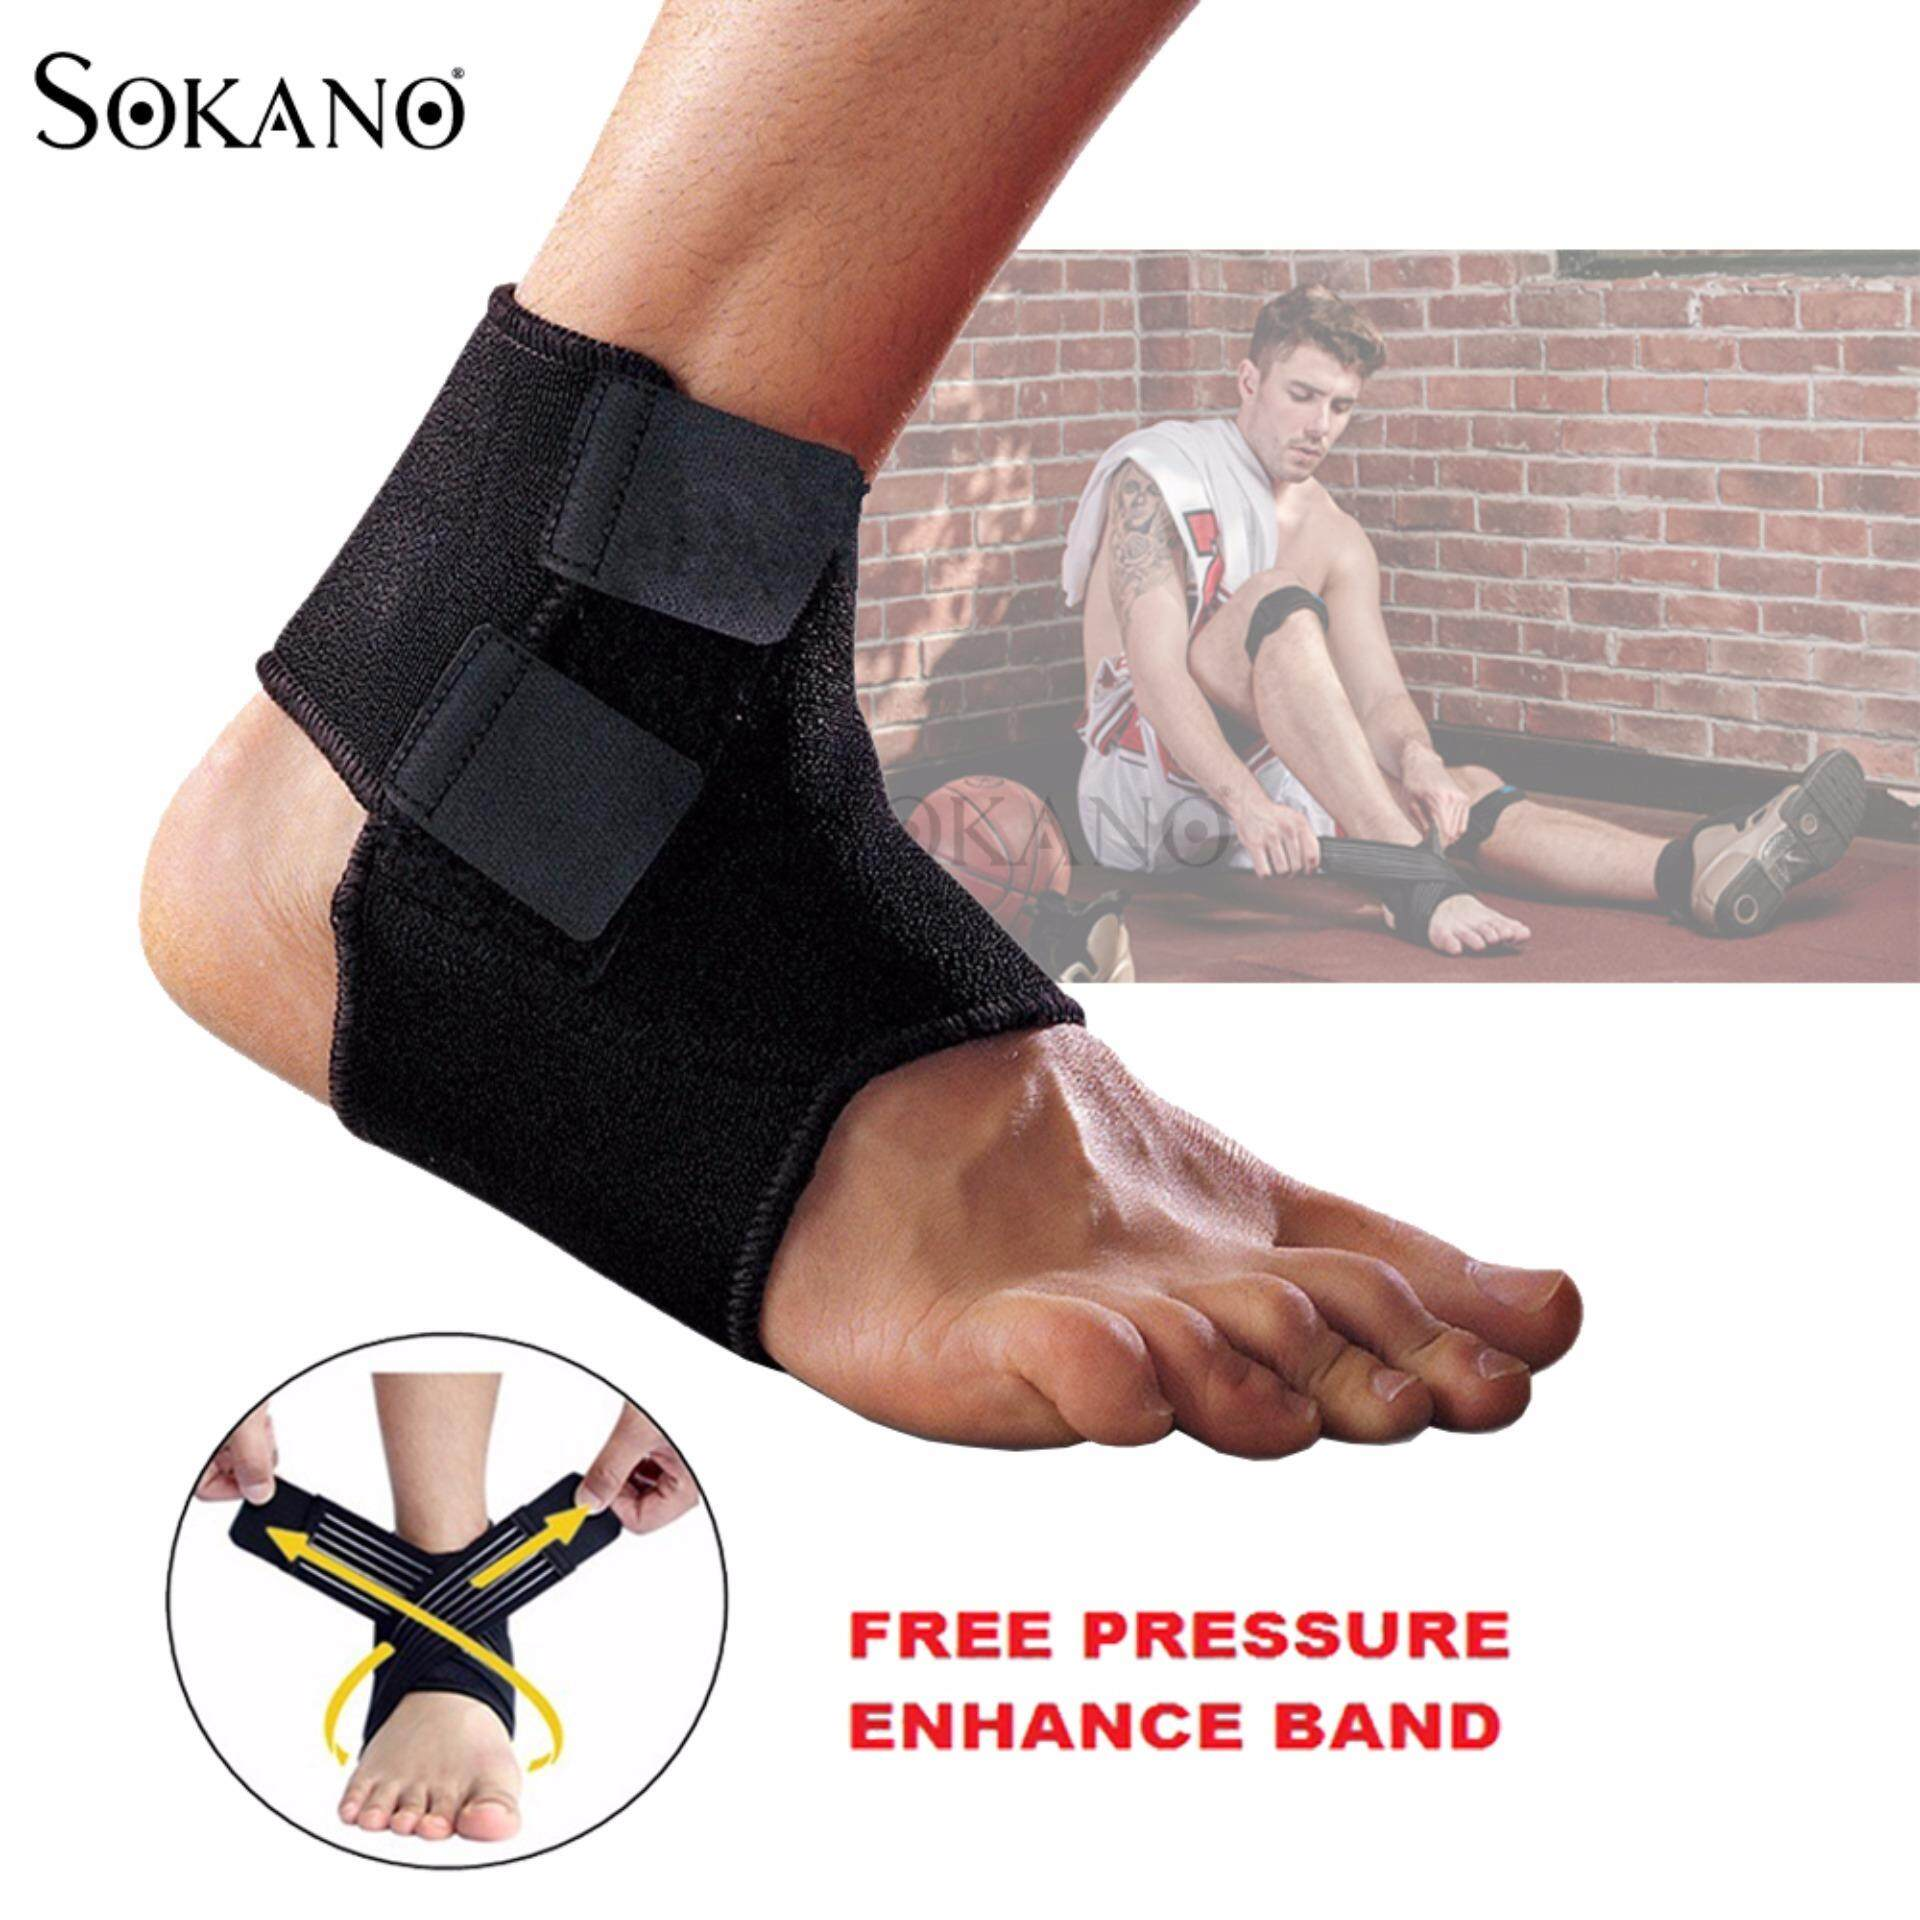 SOKANO Adjustable Ankle Guard For Sports, Outdoor Activities and Elders with Free Pressure Enhance Band